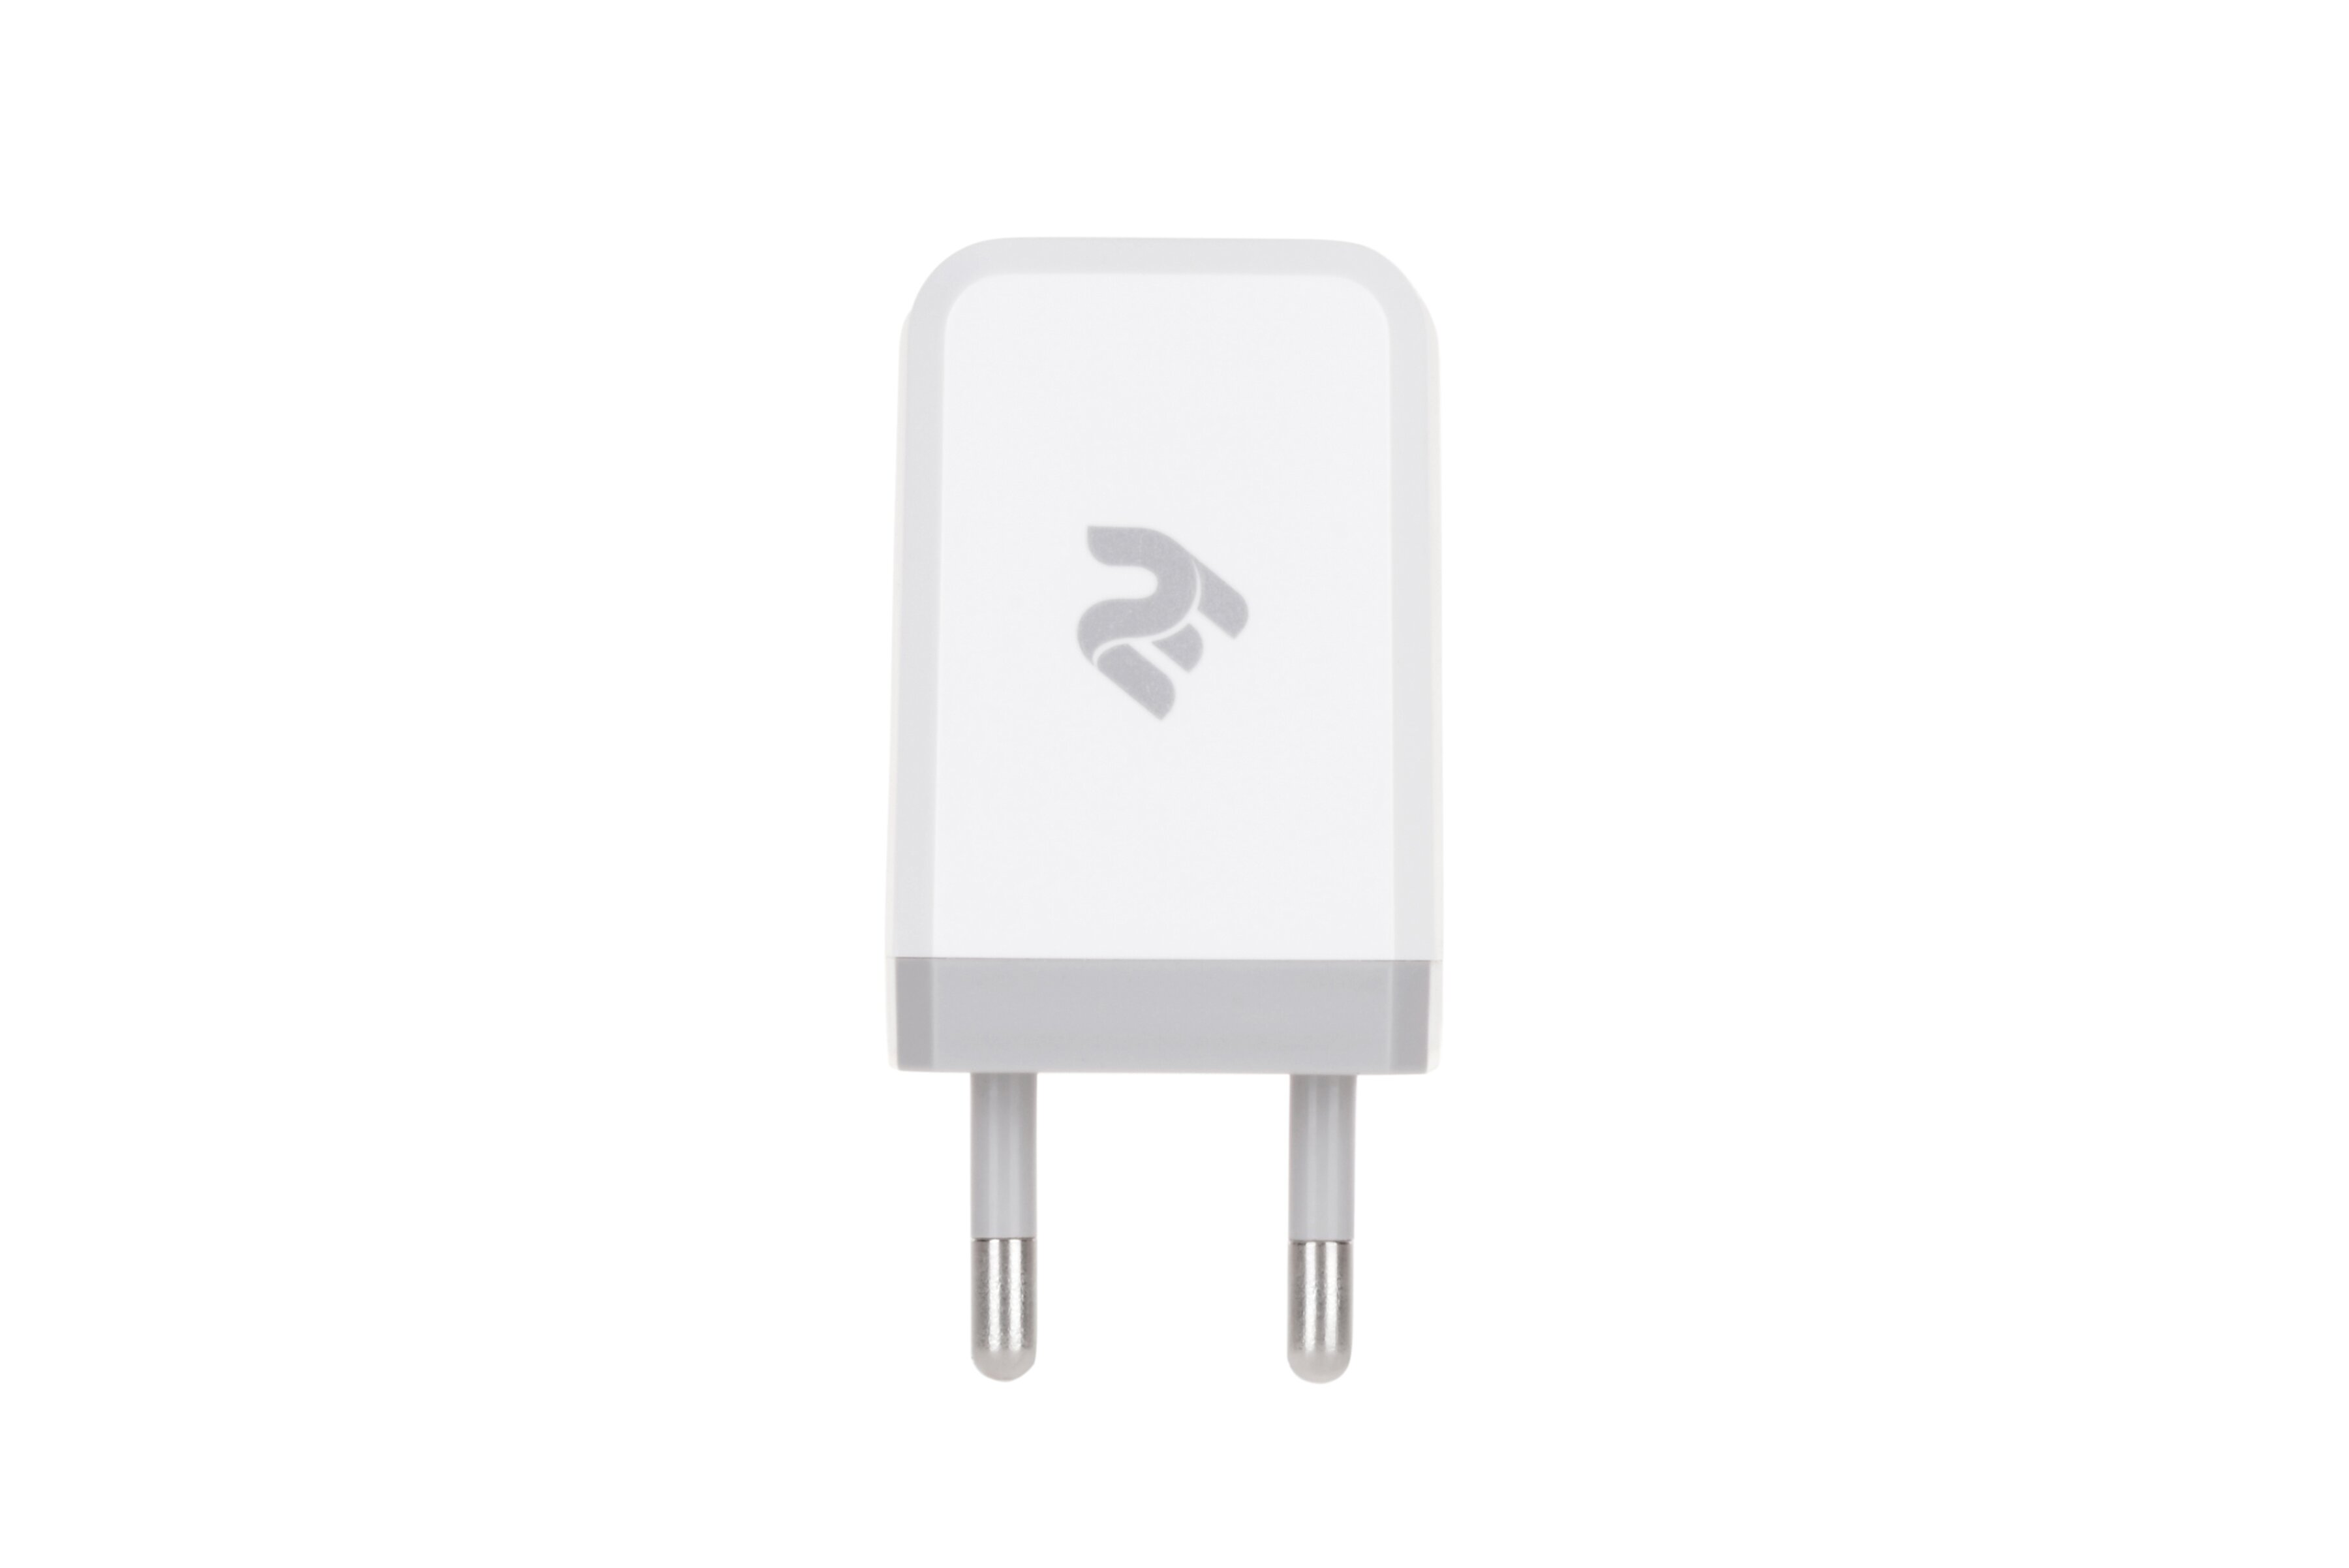 2E Сетевое ЗУ USB Wall Charger USB [2E-WC1USB2.1A-W]